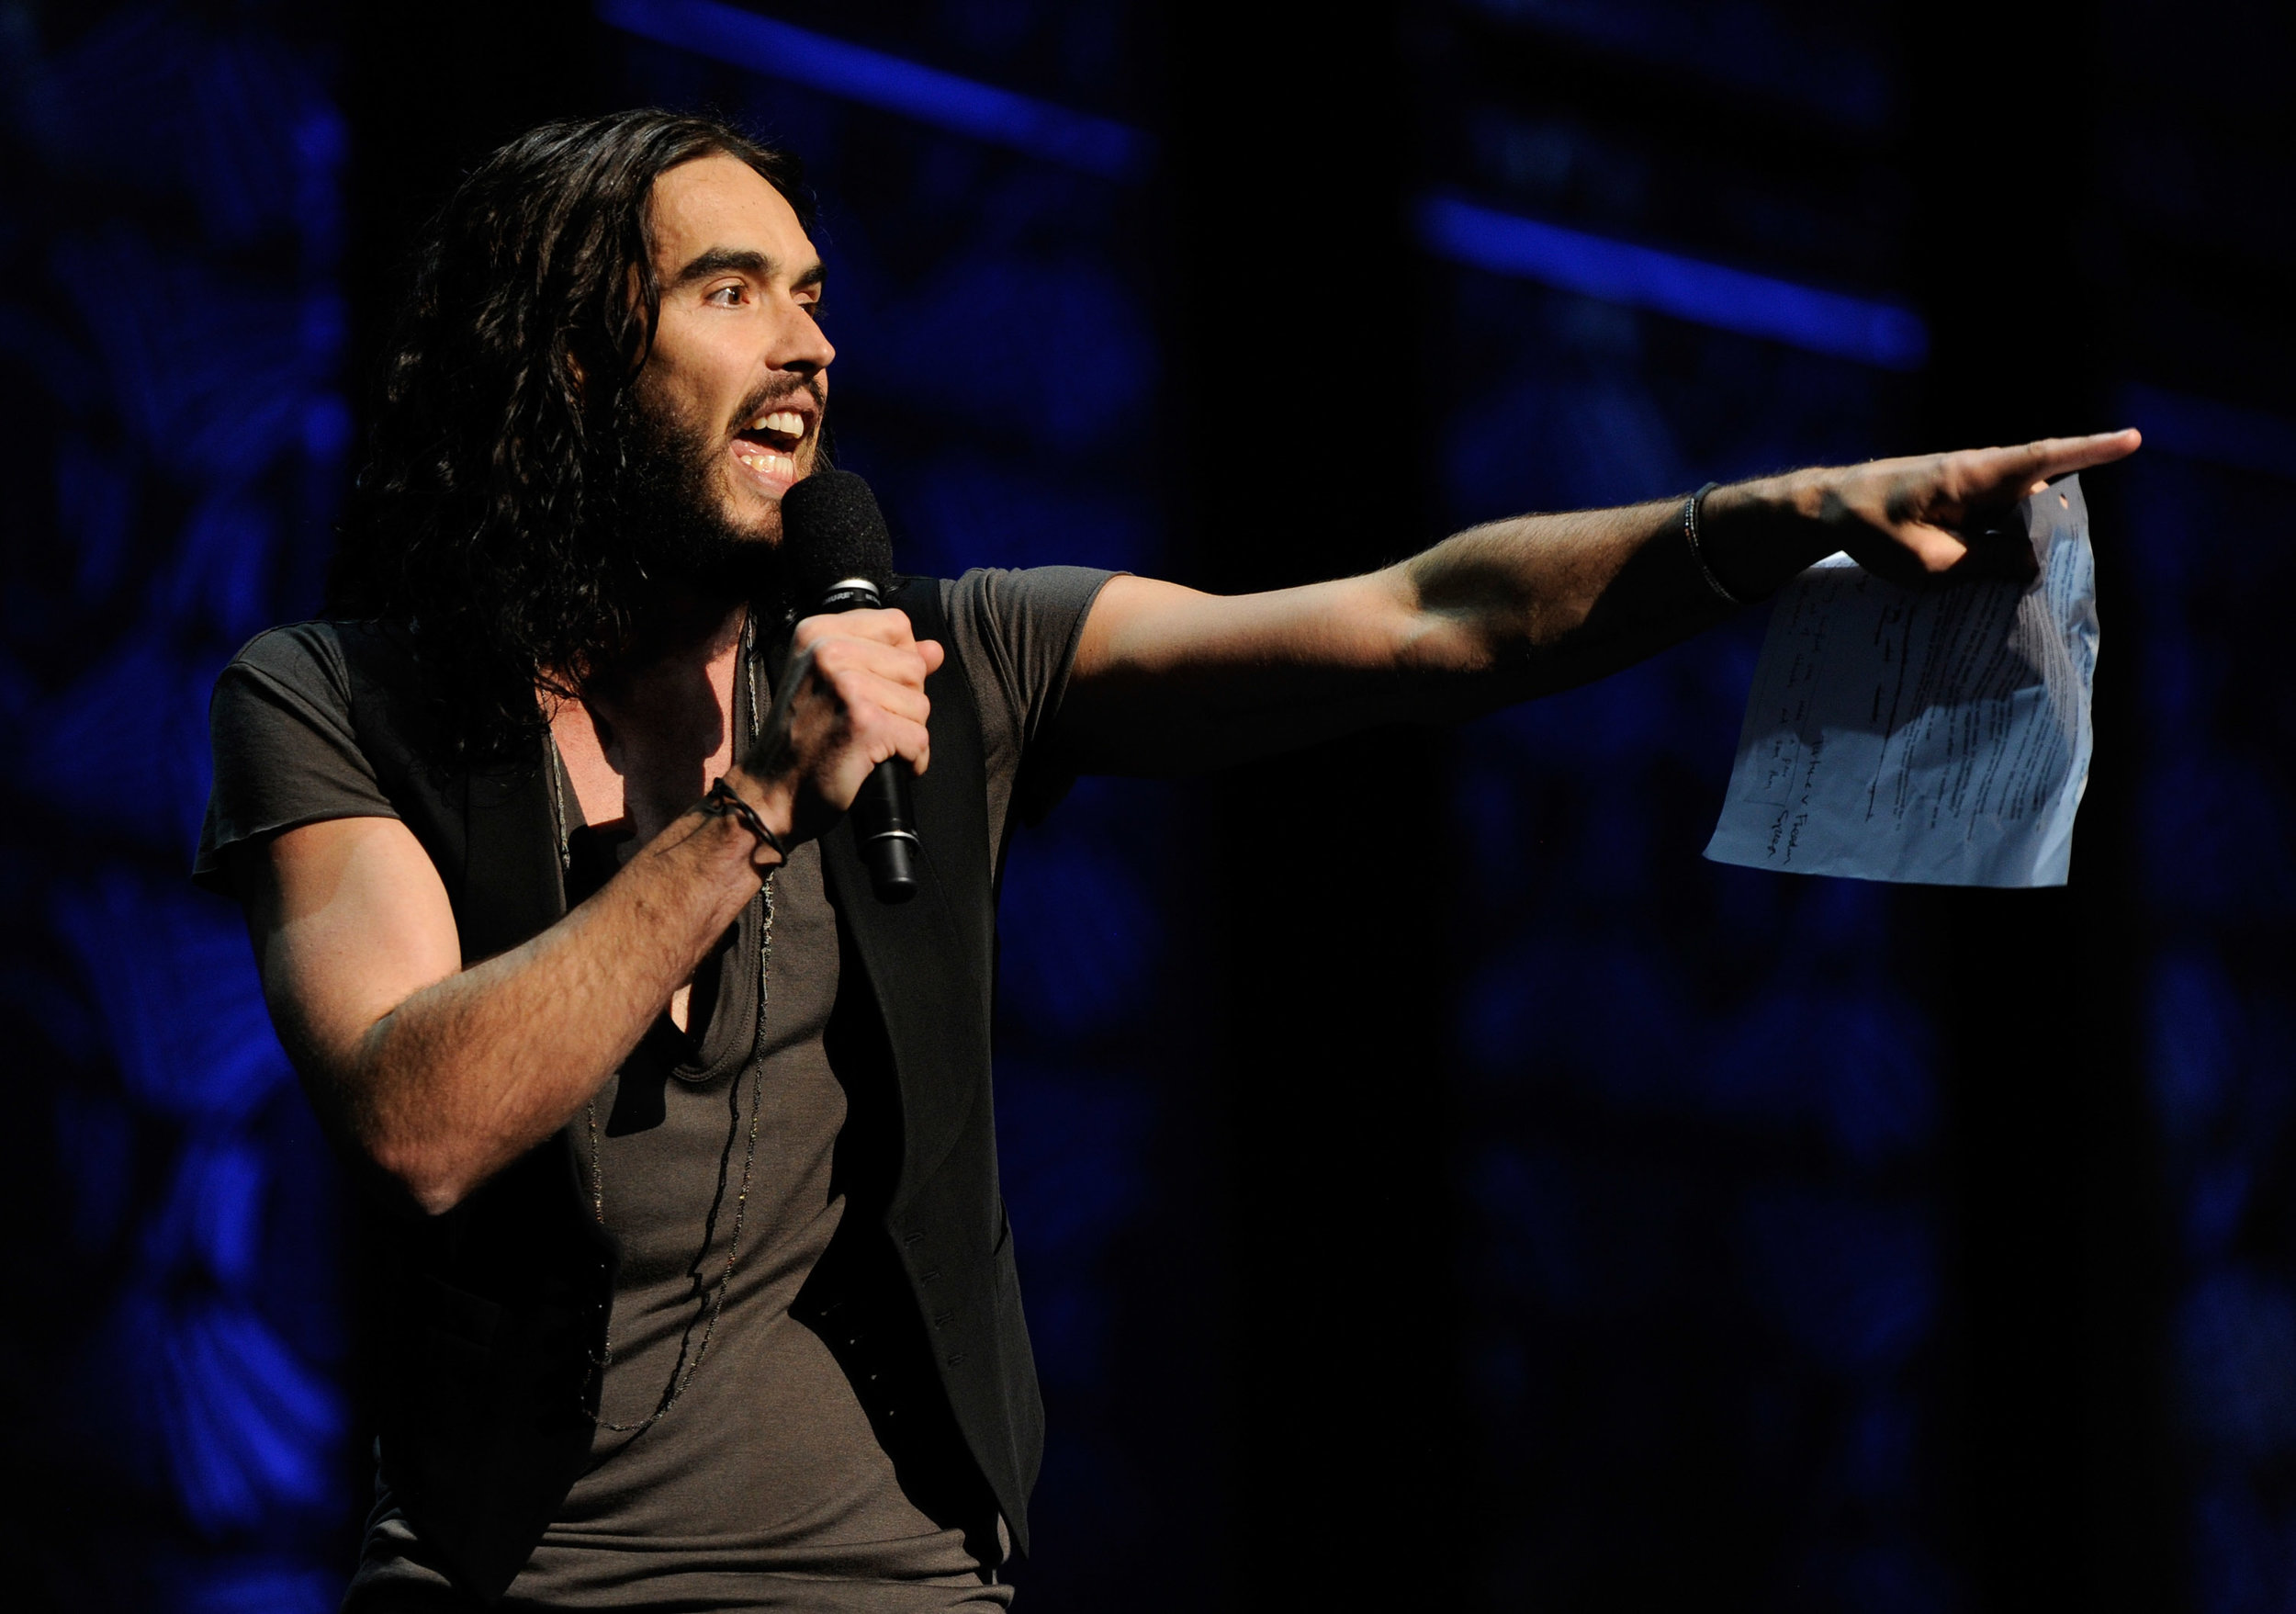 Russell Brand stands up for freedom of expression at the Secret Policeman's Ball, March 2012.